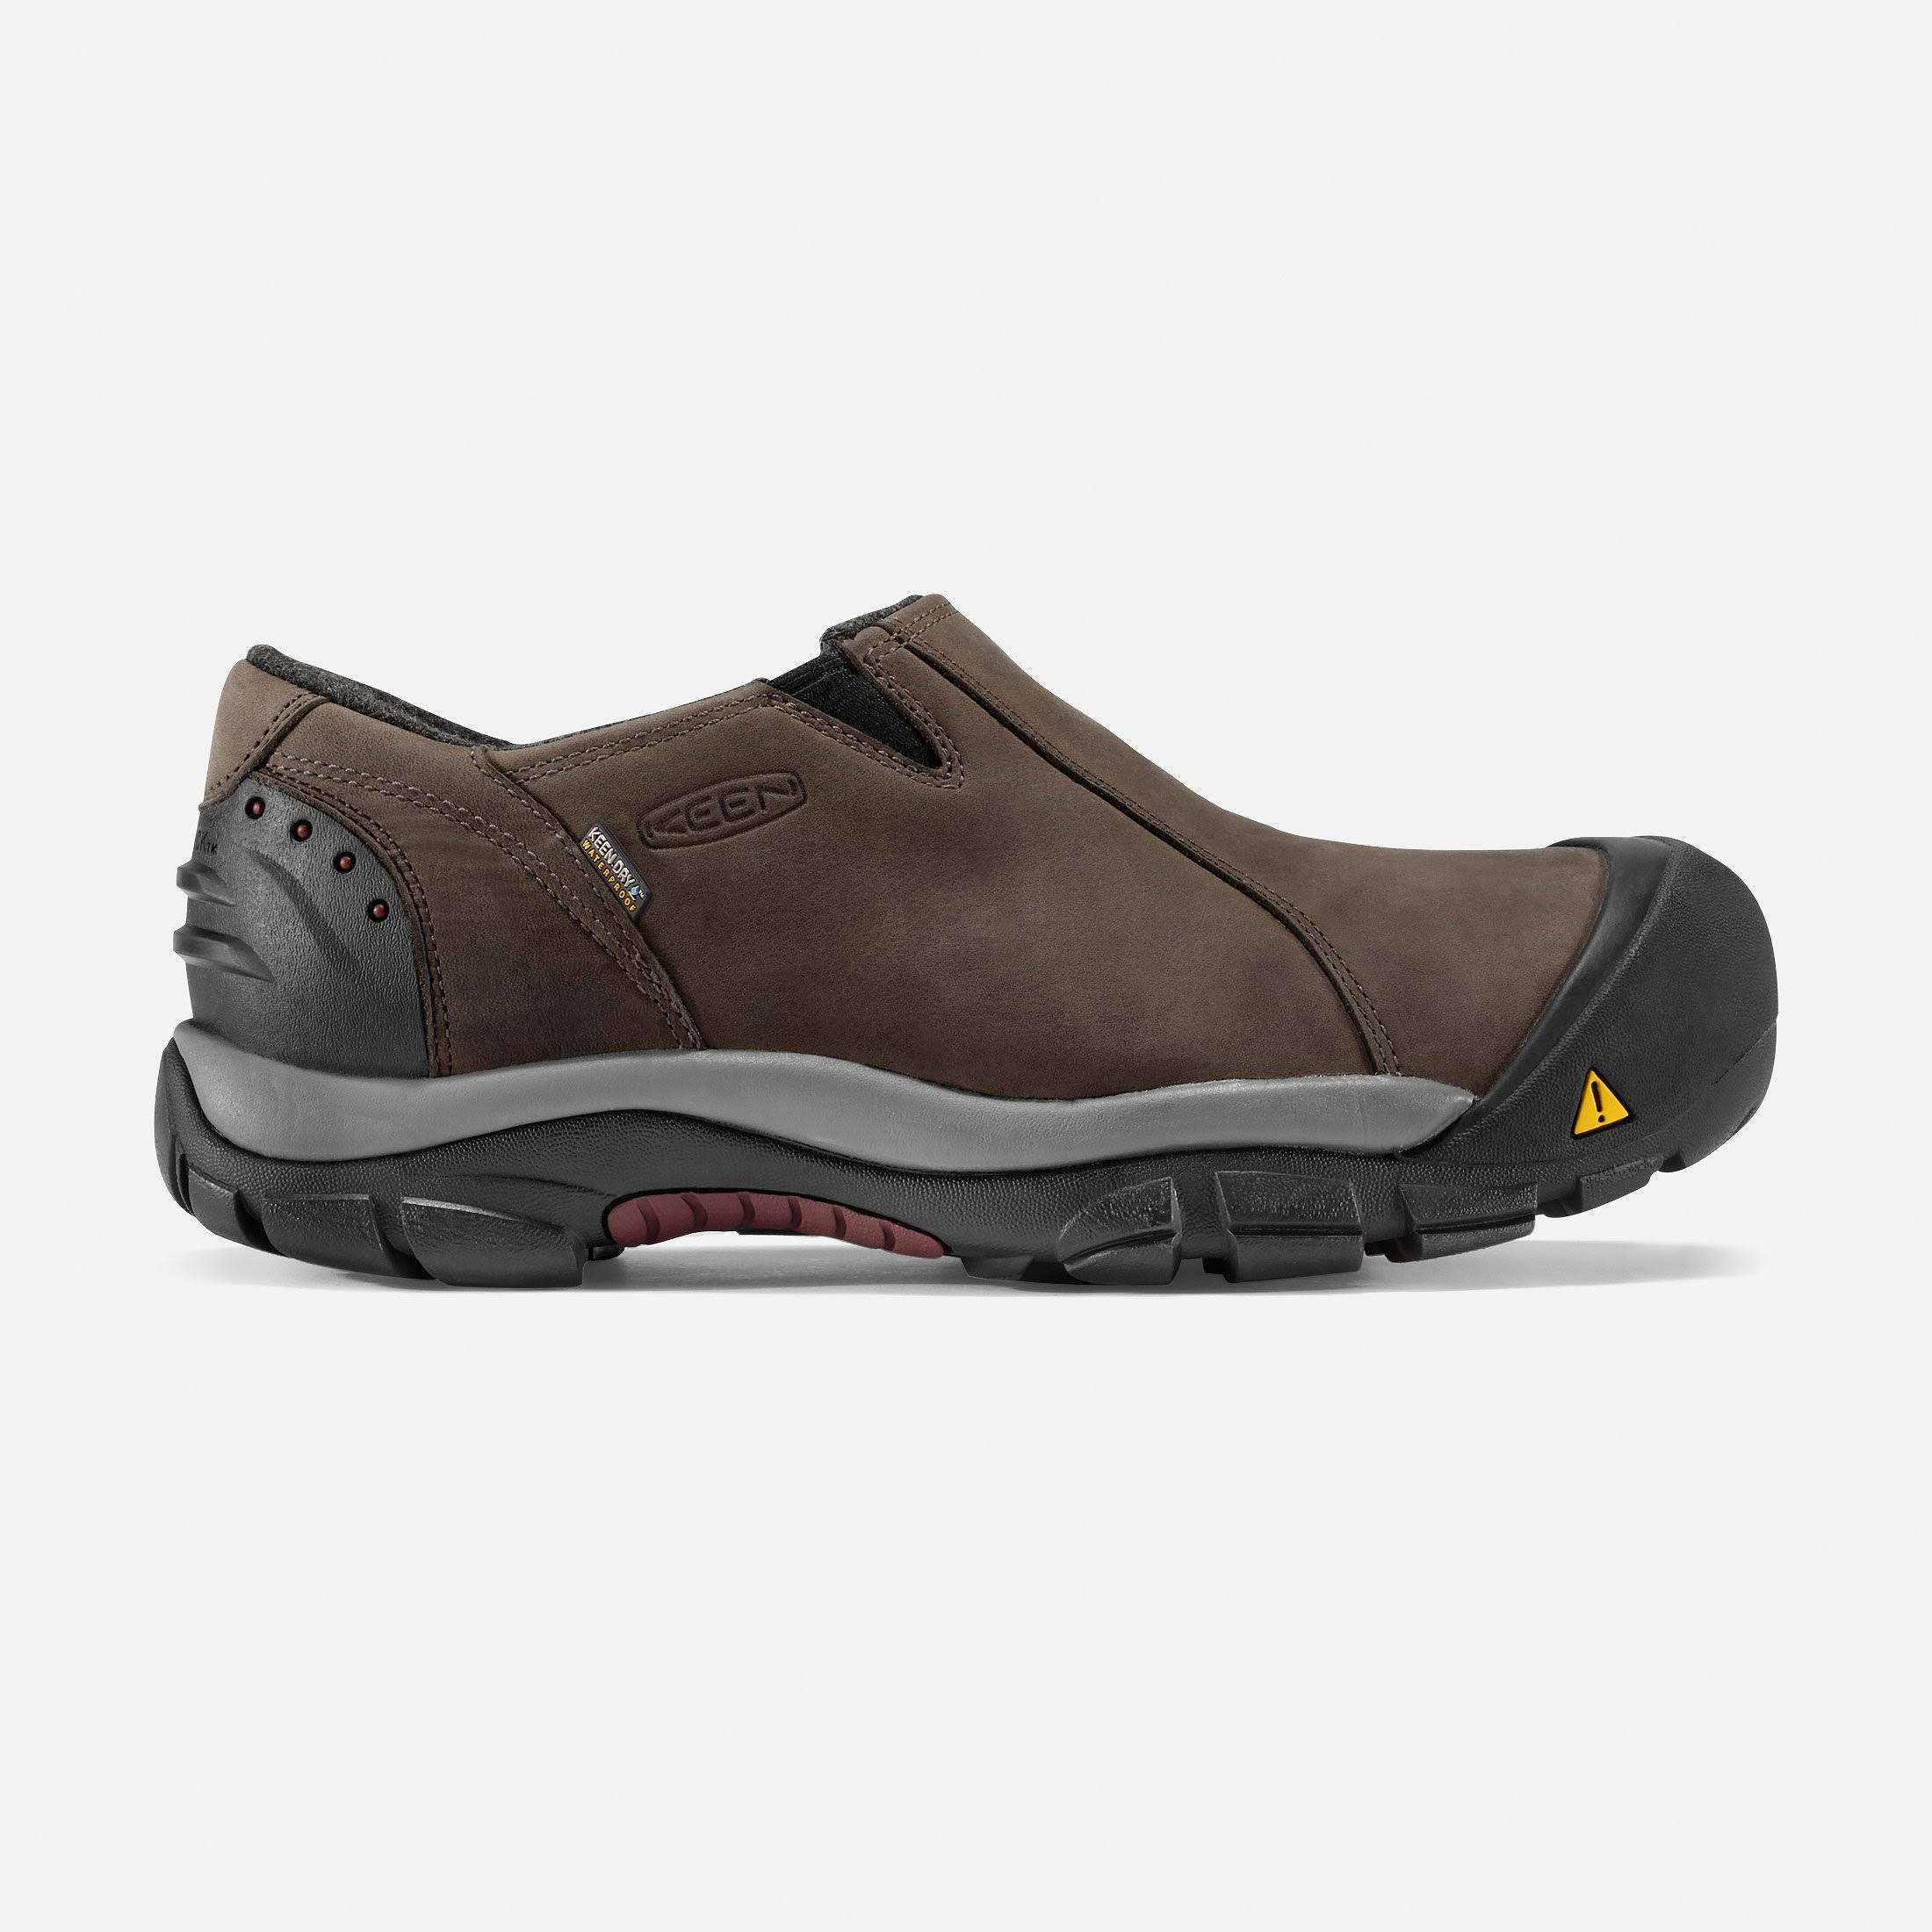 Keen Men's Brixen Waterproof Low (10 Slate Black/Madder Brown)